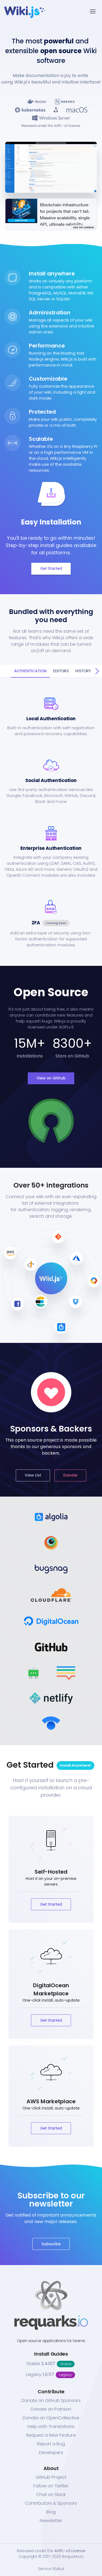 Example of Design for Computers & Electronics, Programming, Mobile Landing Page by wiki.js.org | Mobile Landing Page Design